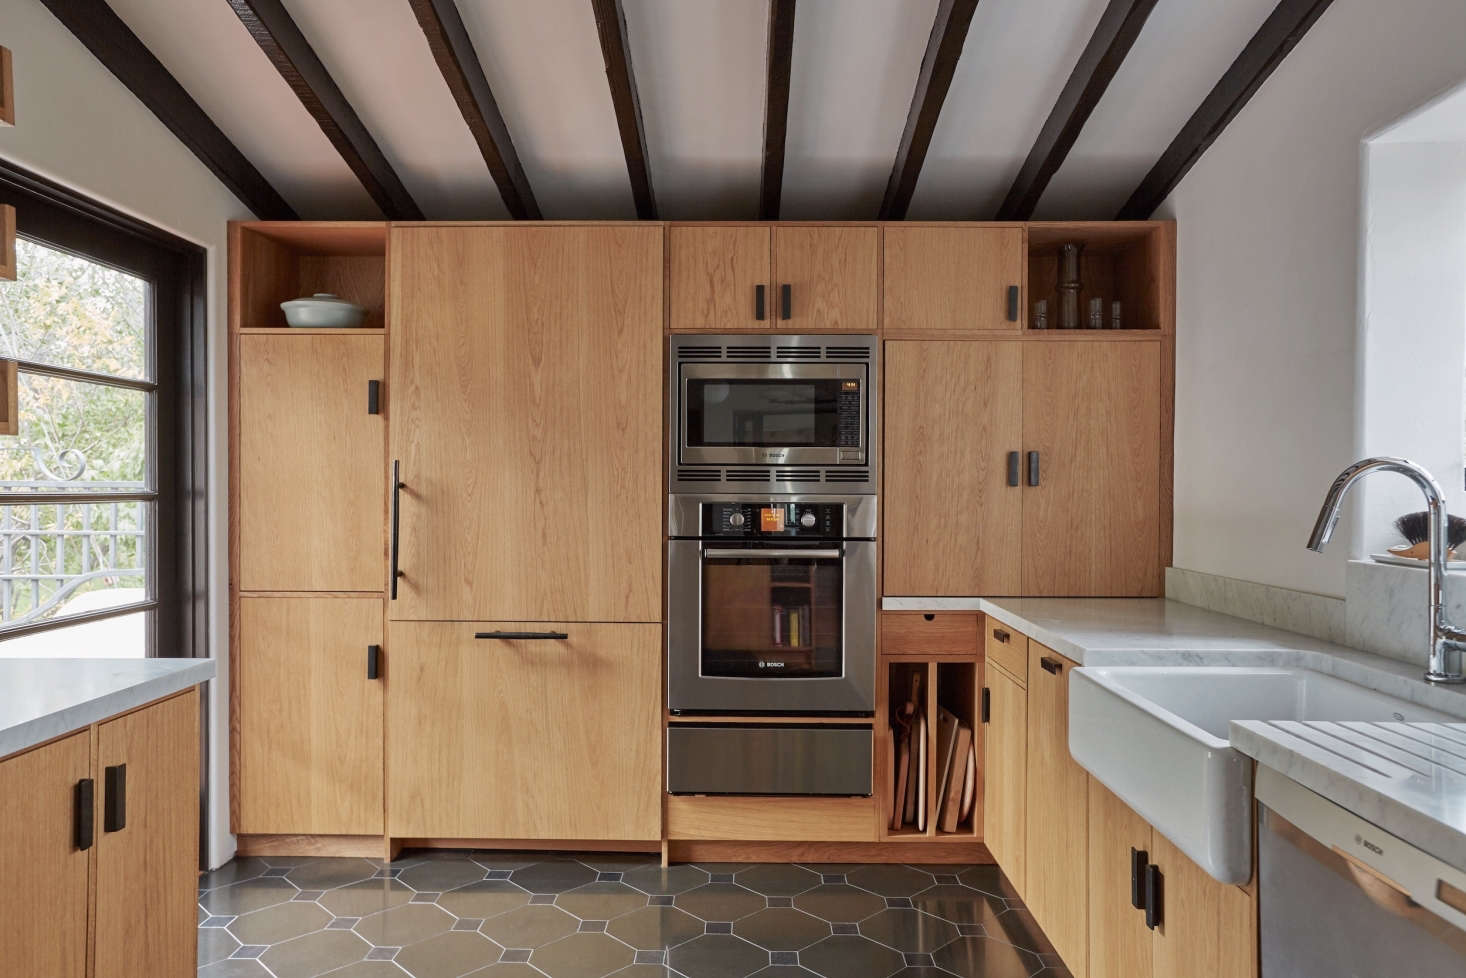 Trend Alert: 9 Kitchens with Floor-to-Ceiling Cabinetry ...